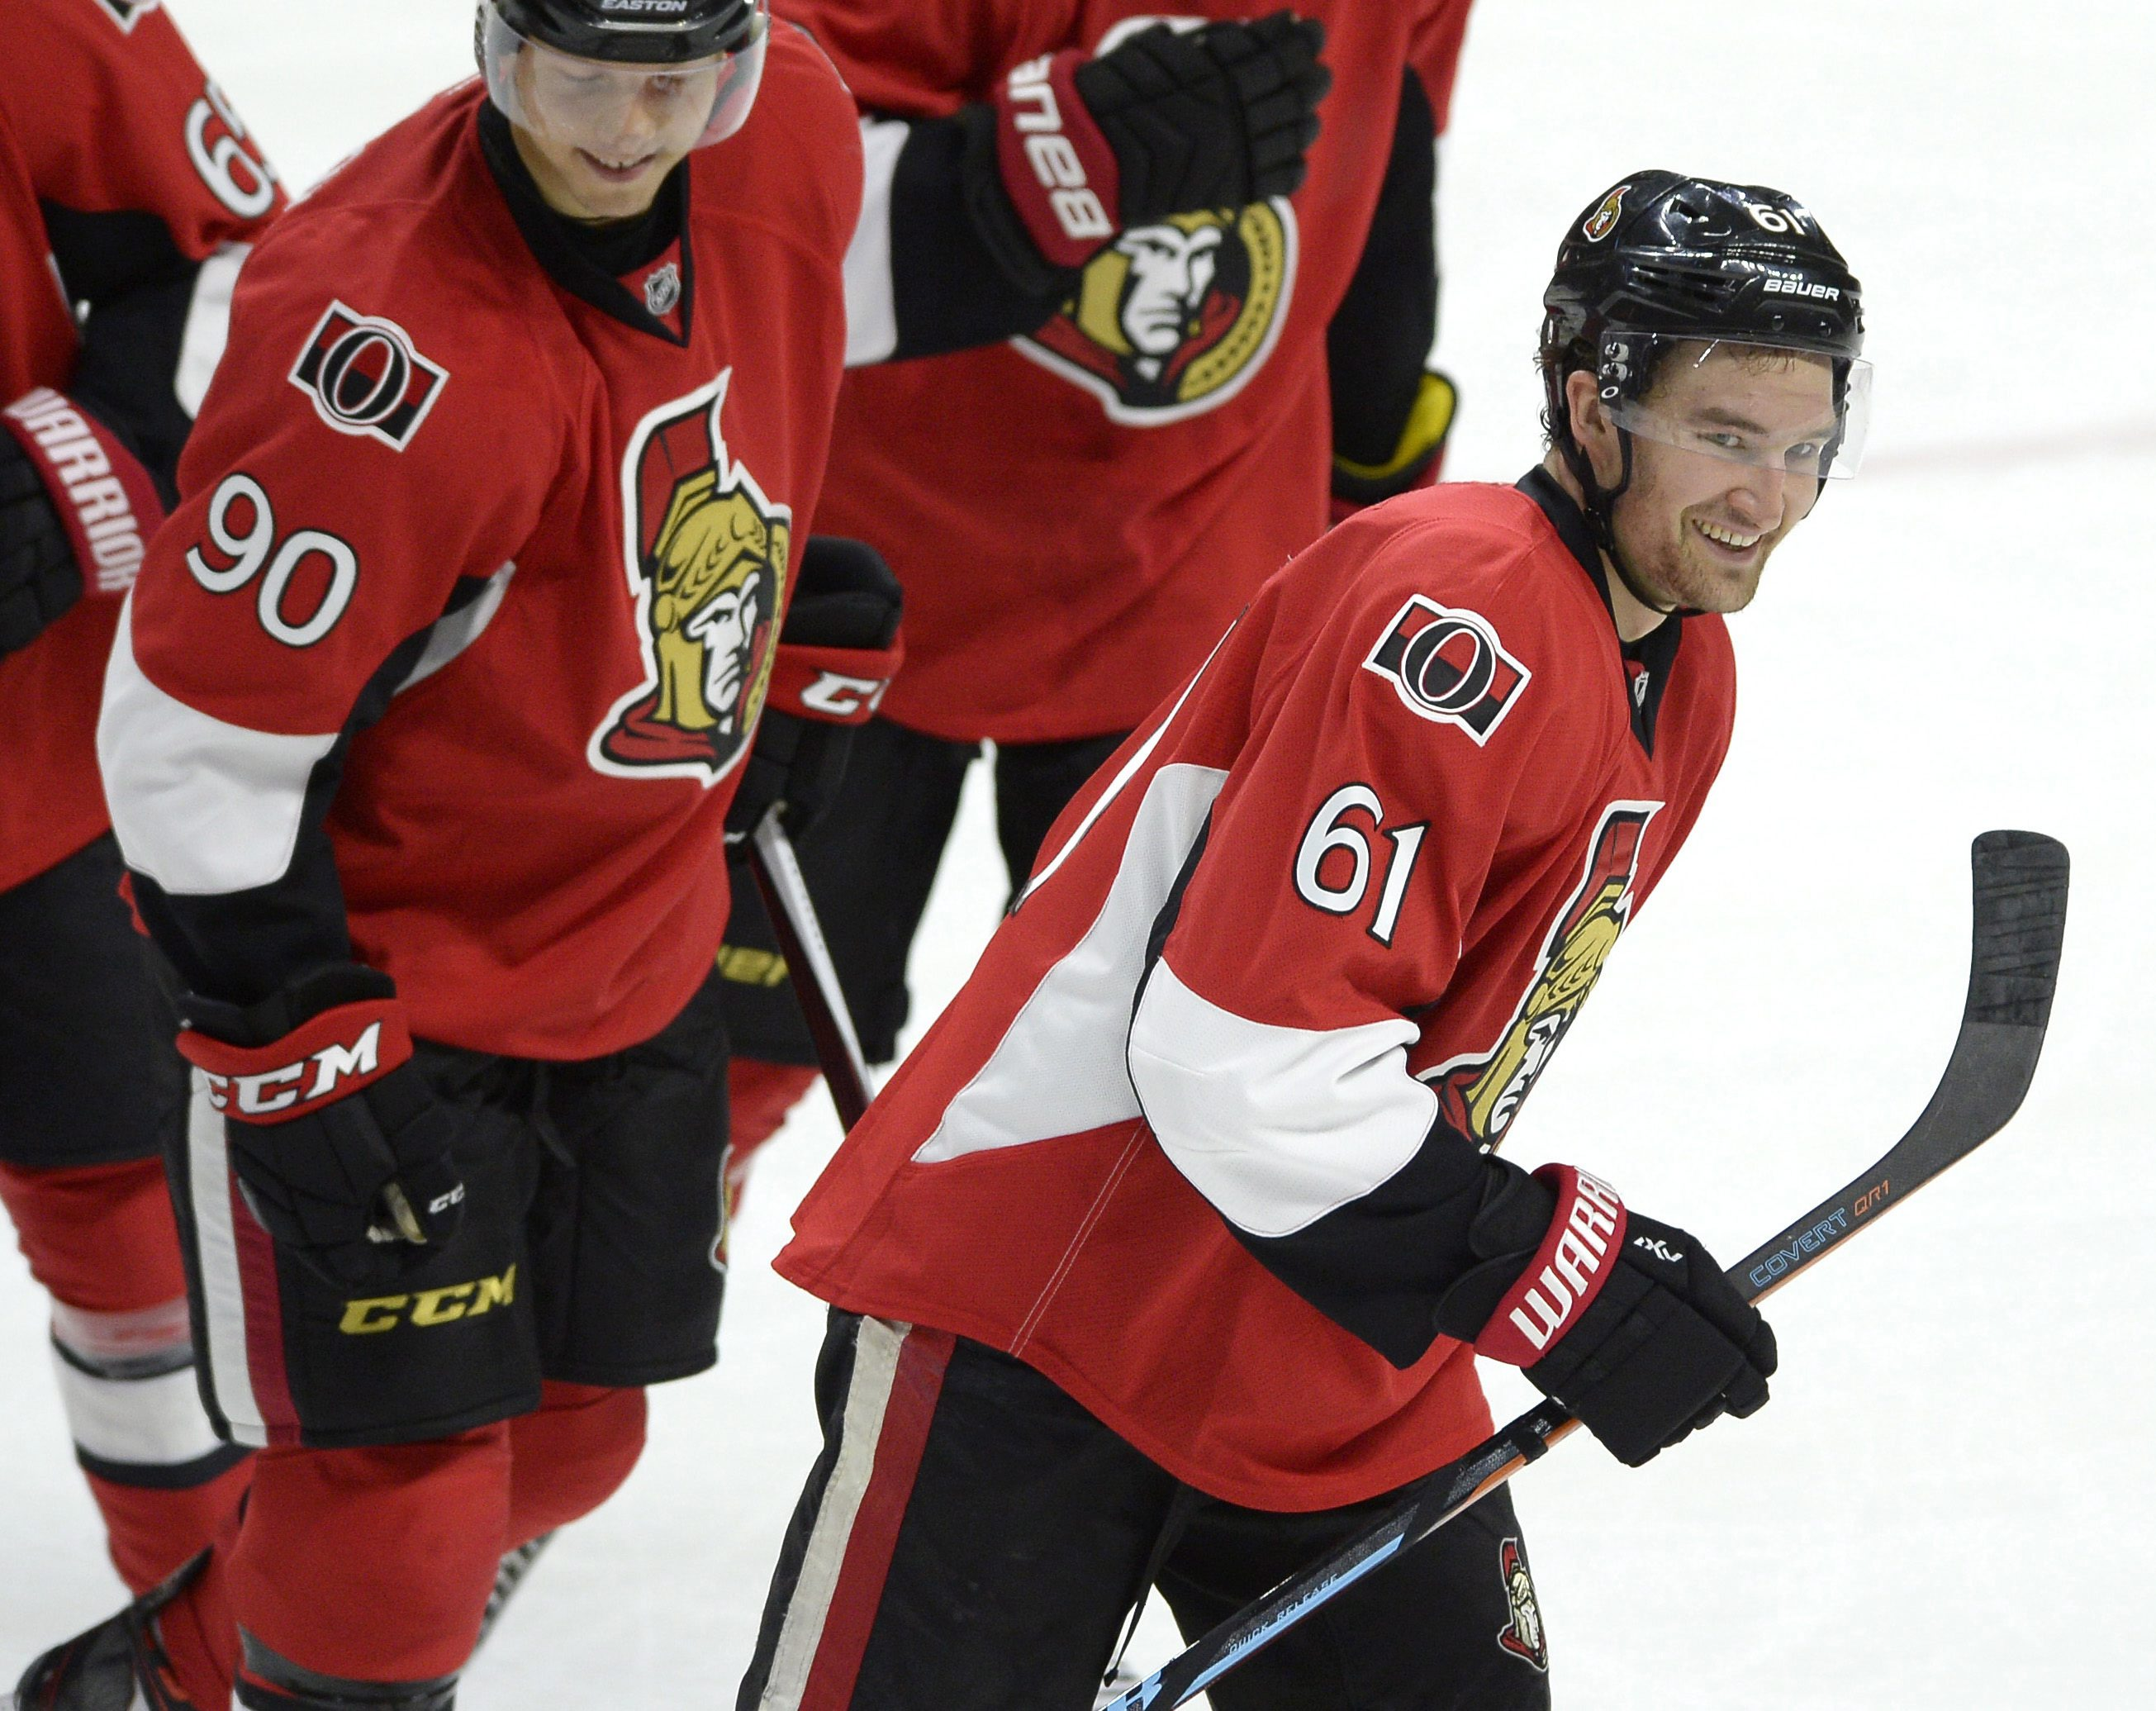 Ottawa Senators' Mark Stone (61) celebrates his goal against the Montreal Canadiens during the second period of a pre-season NHL hockey game, Saturday, Oct. 3, 2015, in Ottawa, Ontario. (Justin Tang /The Canadian Press via AP) MANDATORY CREDIT